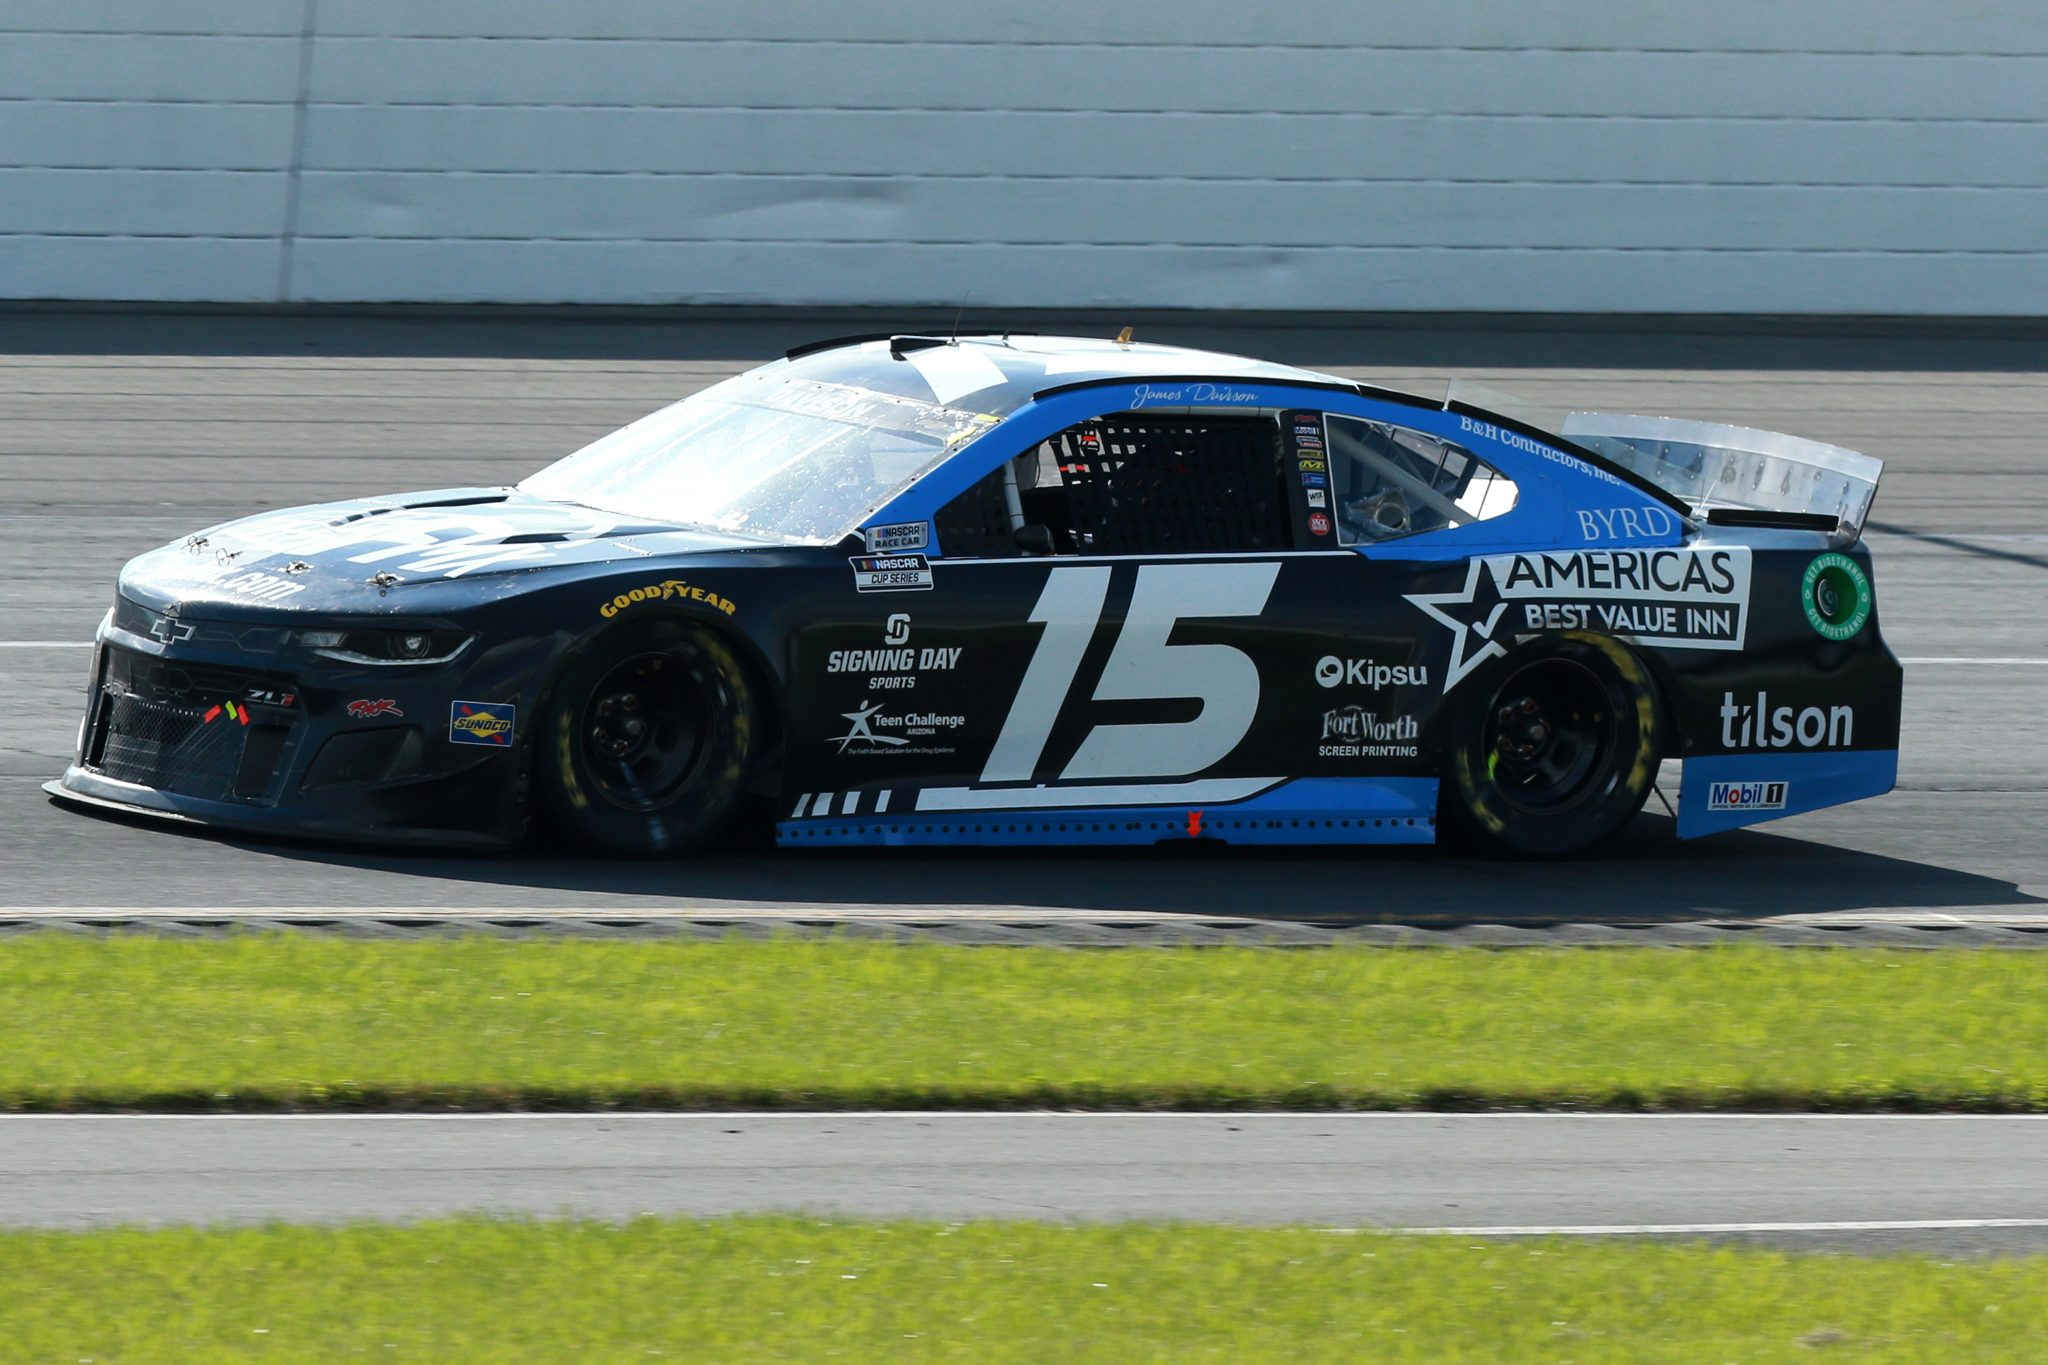 LONG POND, PENNSYLVANIA - JUNE 27: James Davison, driver of the #15 Go FMX Chevrolet, drives during the NASCAR Cup Series Explore the Pocono Mountains 350 at Pocono Raceway on June 27, 2021 in Long Pond, Pennsylvania. (Photo by Sean Gardner/Getty Images) | Getty Images